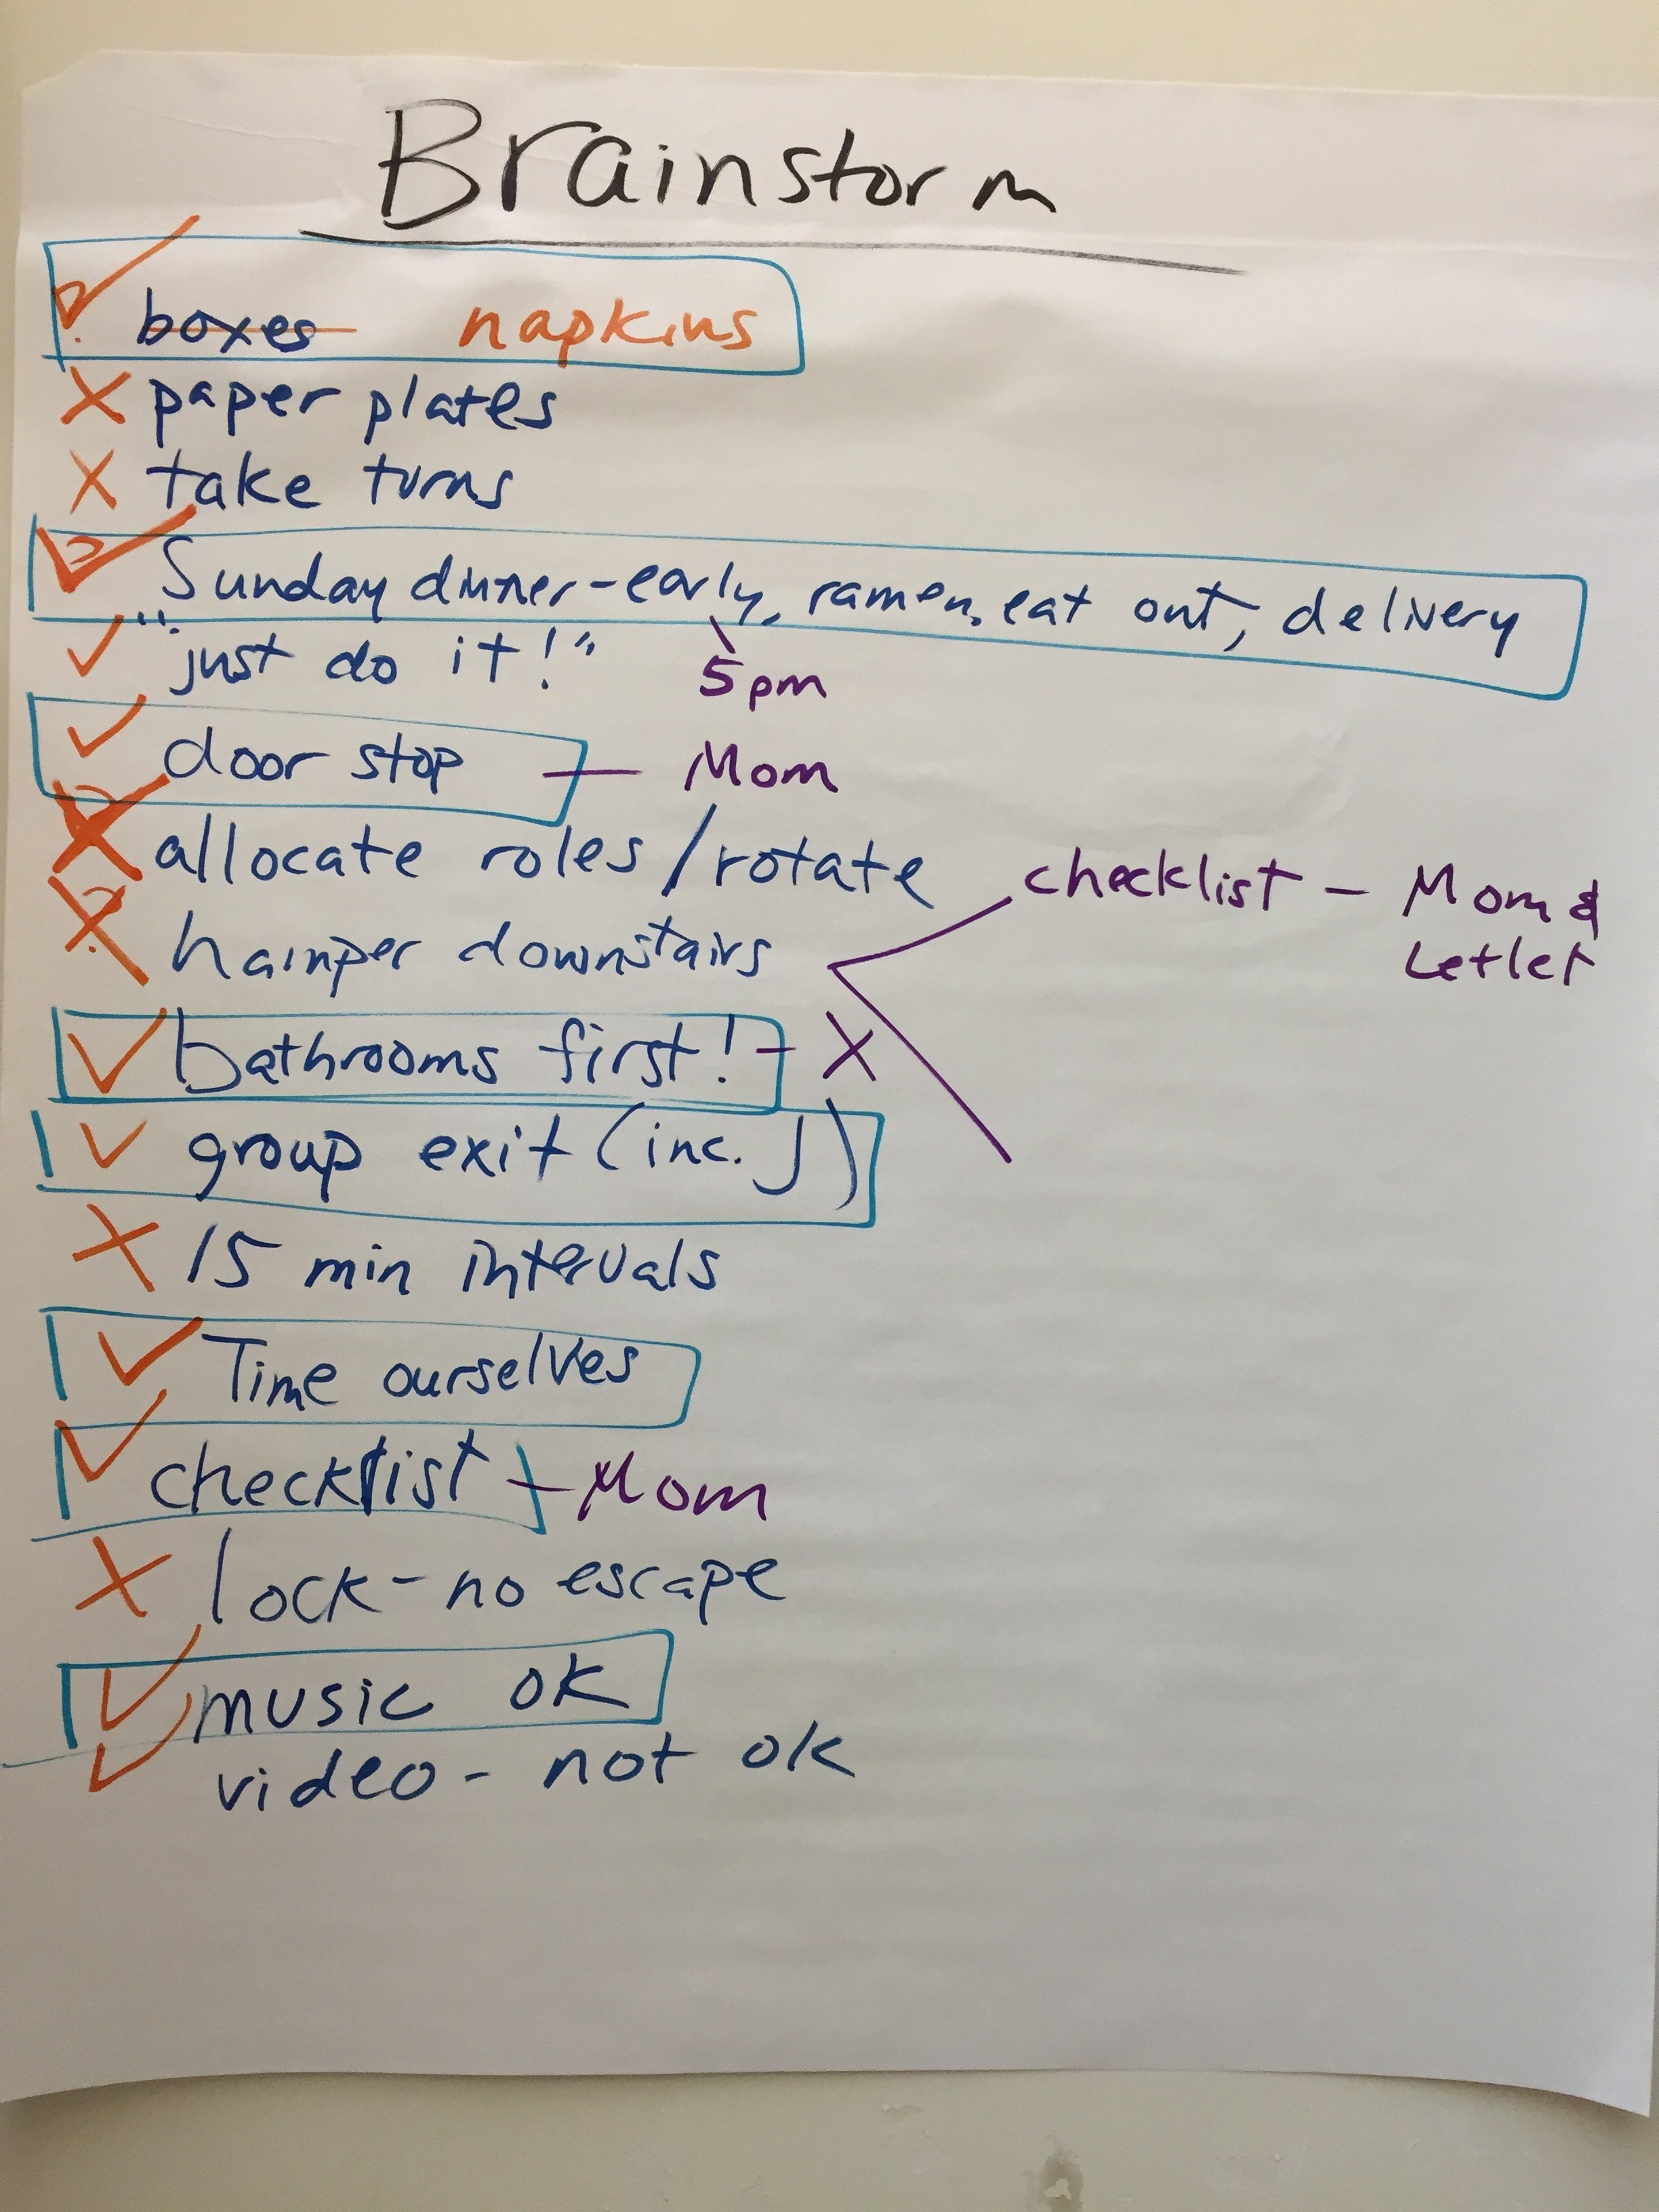 Next steps: we brainstormed, evaluated and chose our solutions. After trying themout the following Sunday, we checked back in with each other.